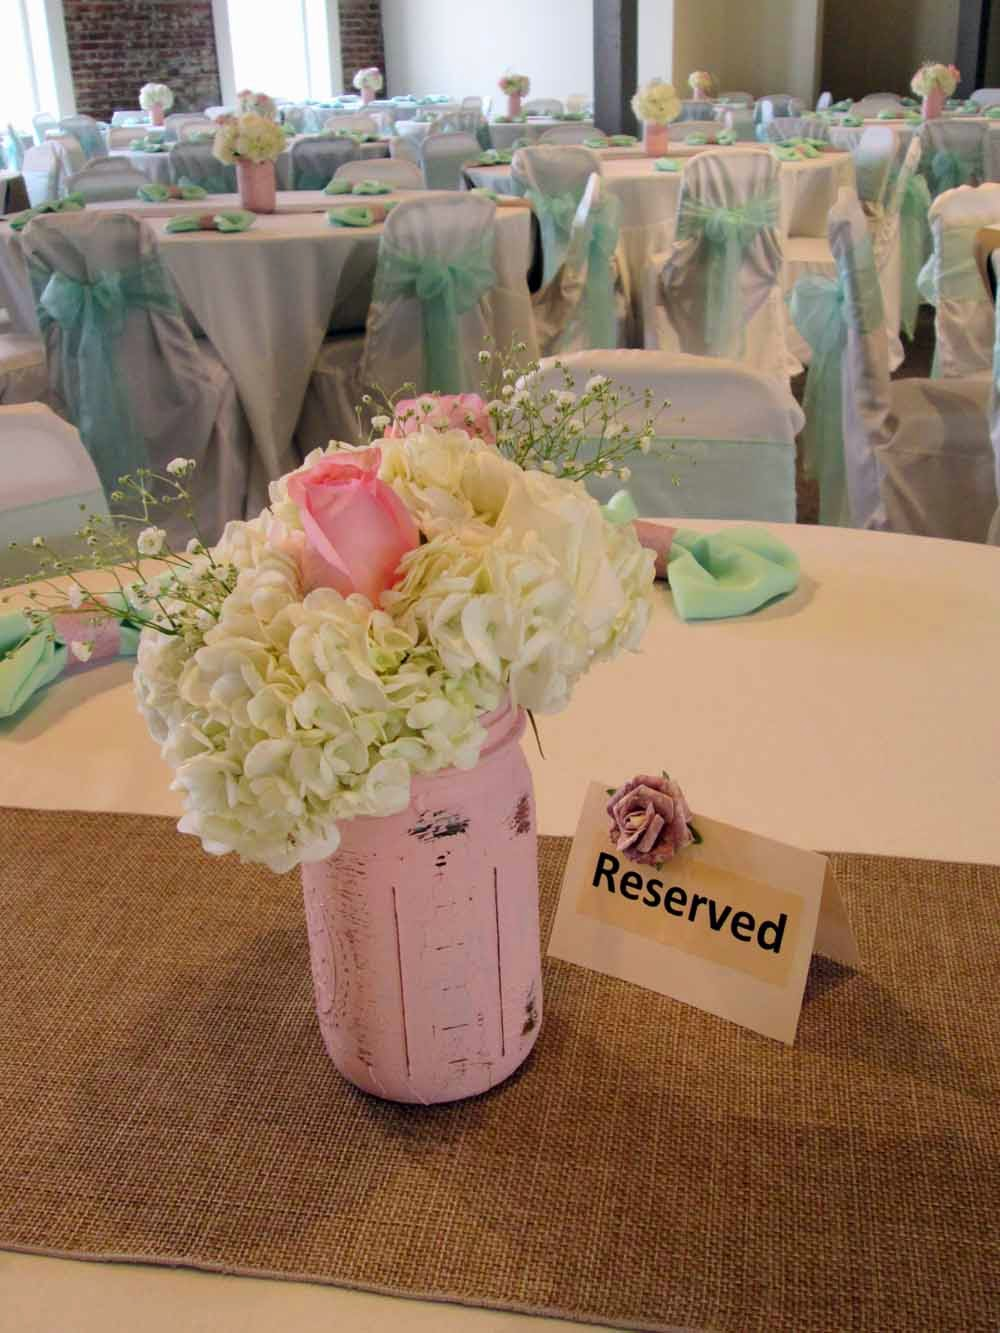 diy organza chair covers sofa sleeper twin get the look rustic mint and blush wedding reception elite events napkin ring our soft faux burlap table runners compliment mason jar centerpieces with floral by blooms bouquets ivory